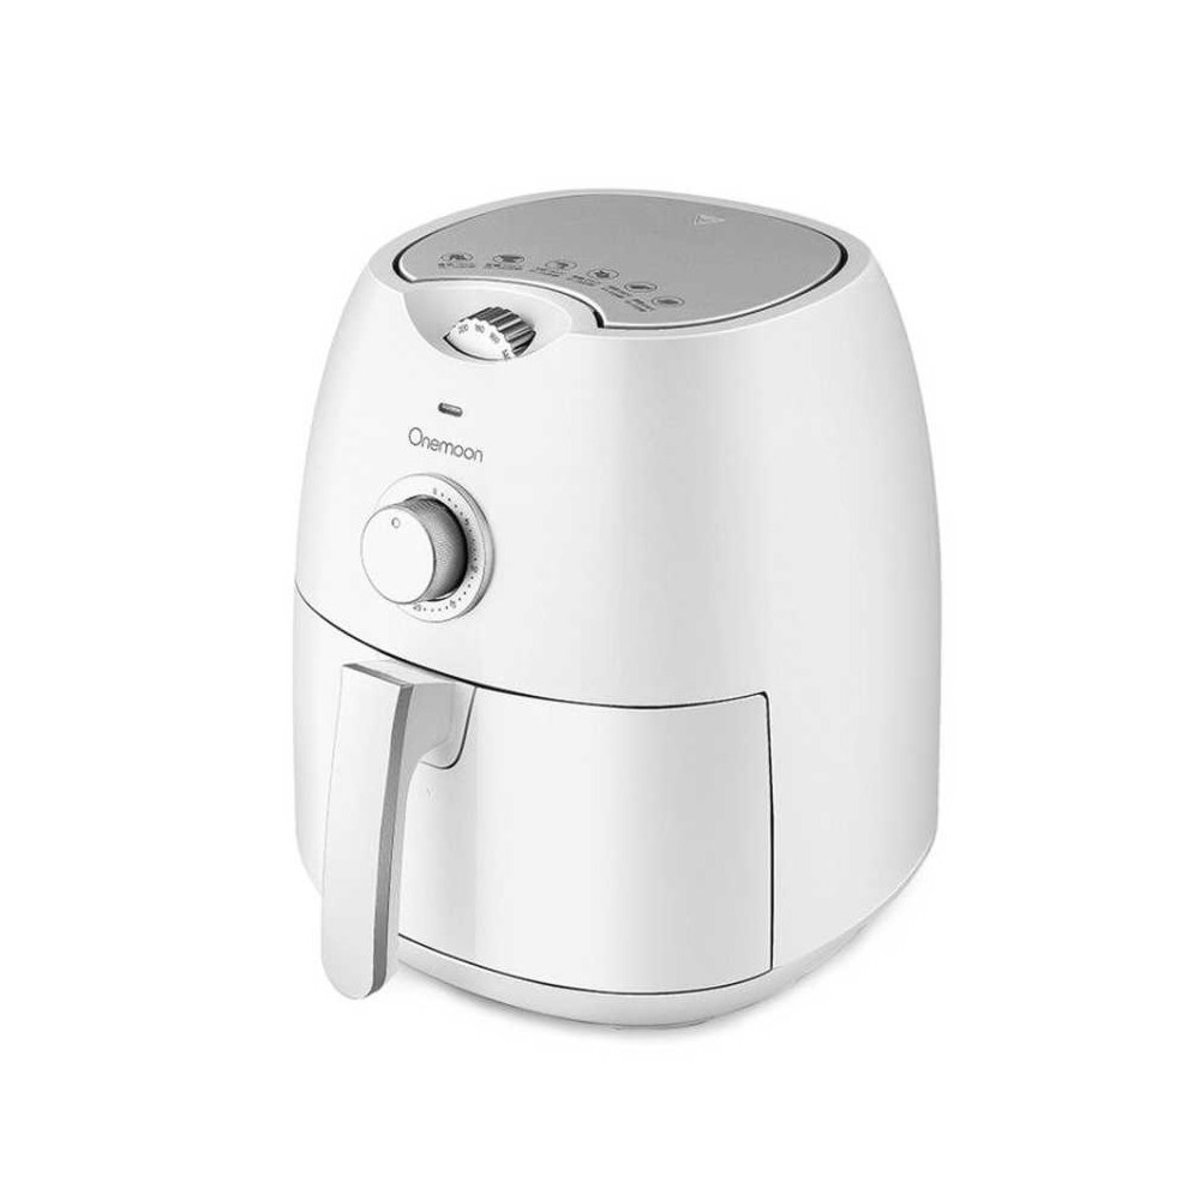 Onemoon 4.5L oil-free AirFryer - OA2